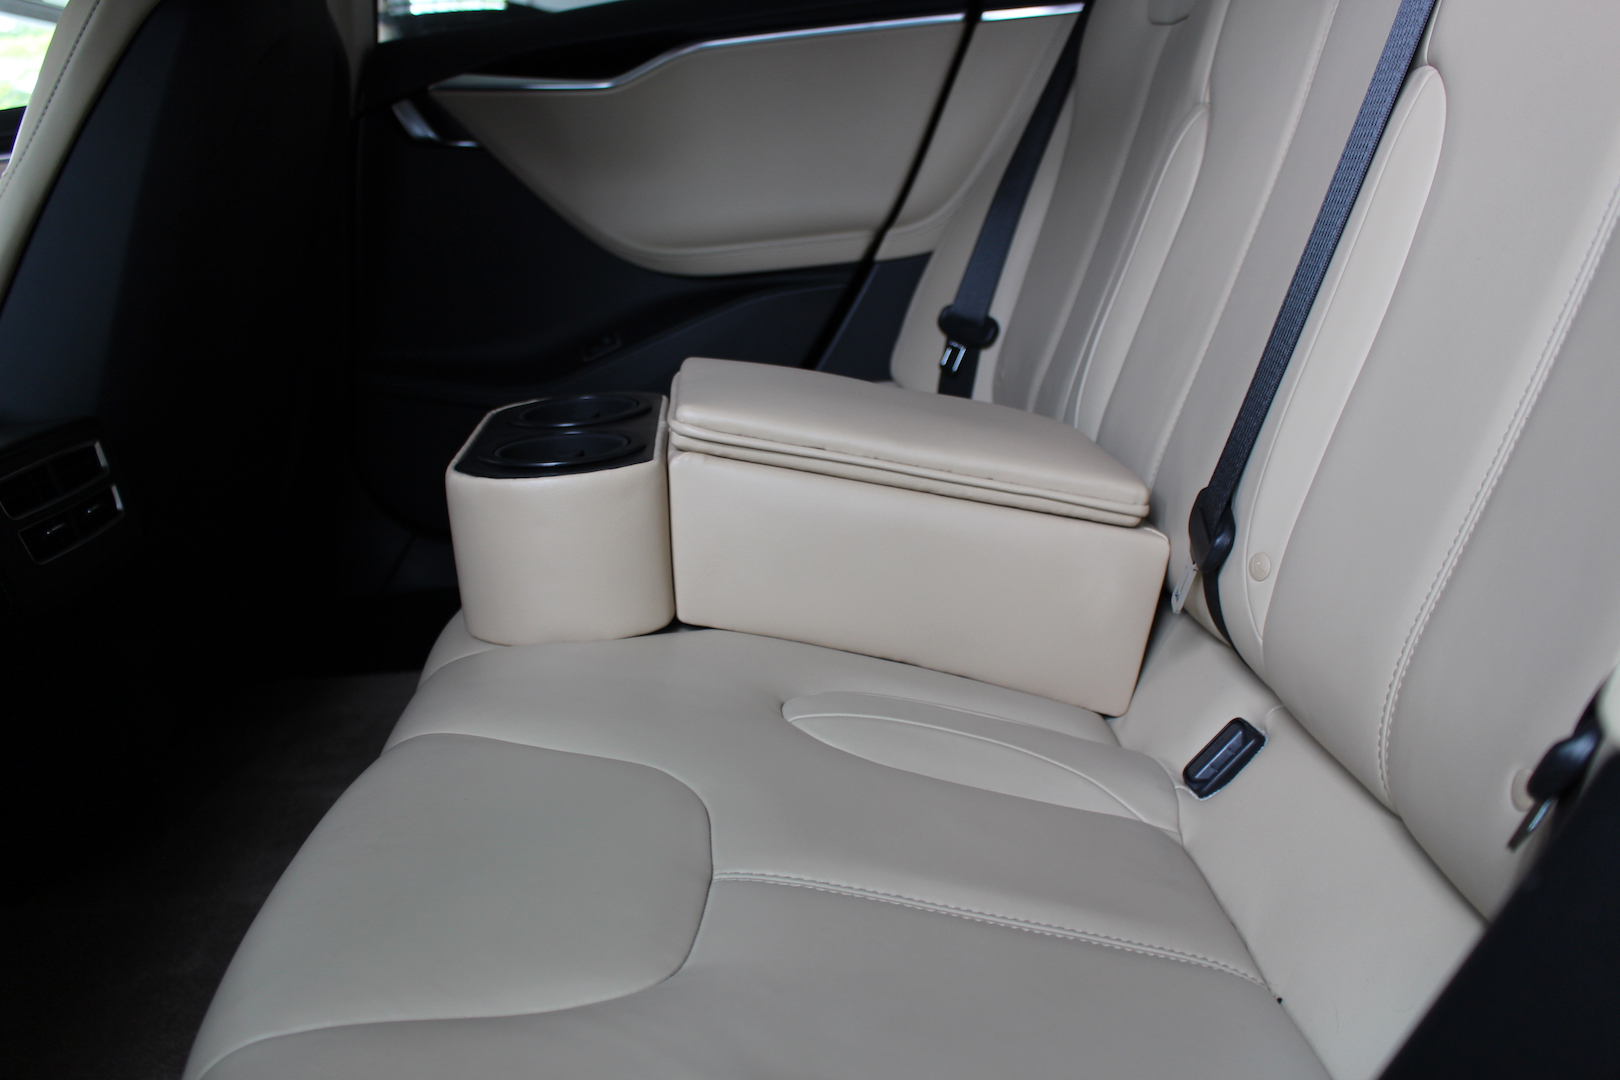 Rear center seatbelt on 5-door models